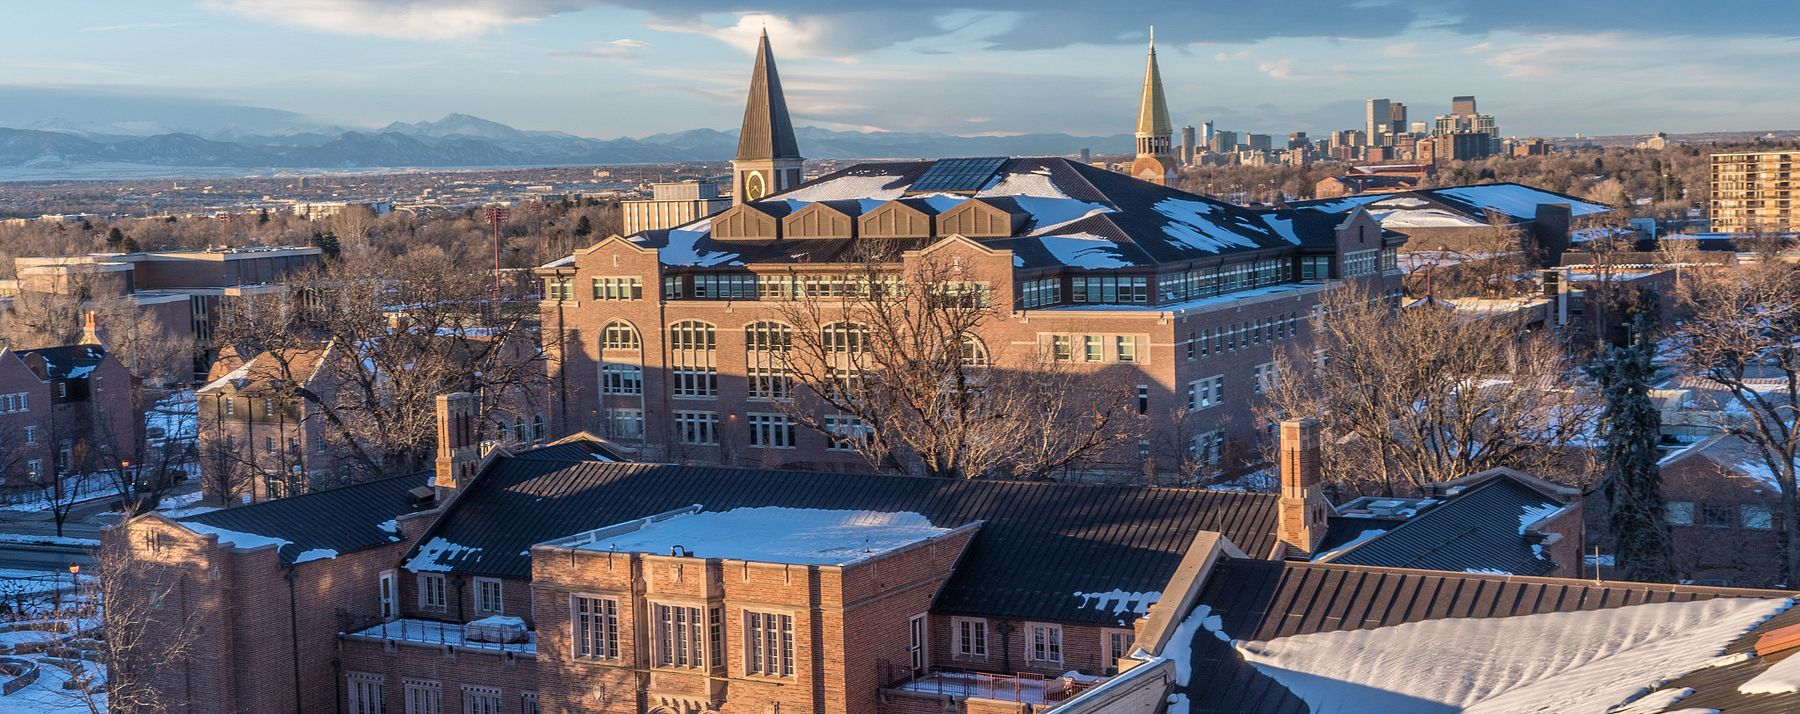 aerial view of snowy campus